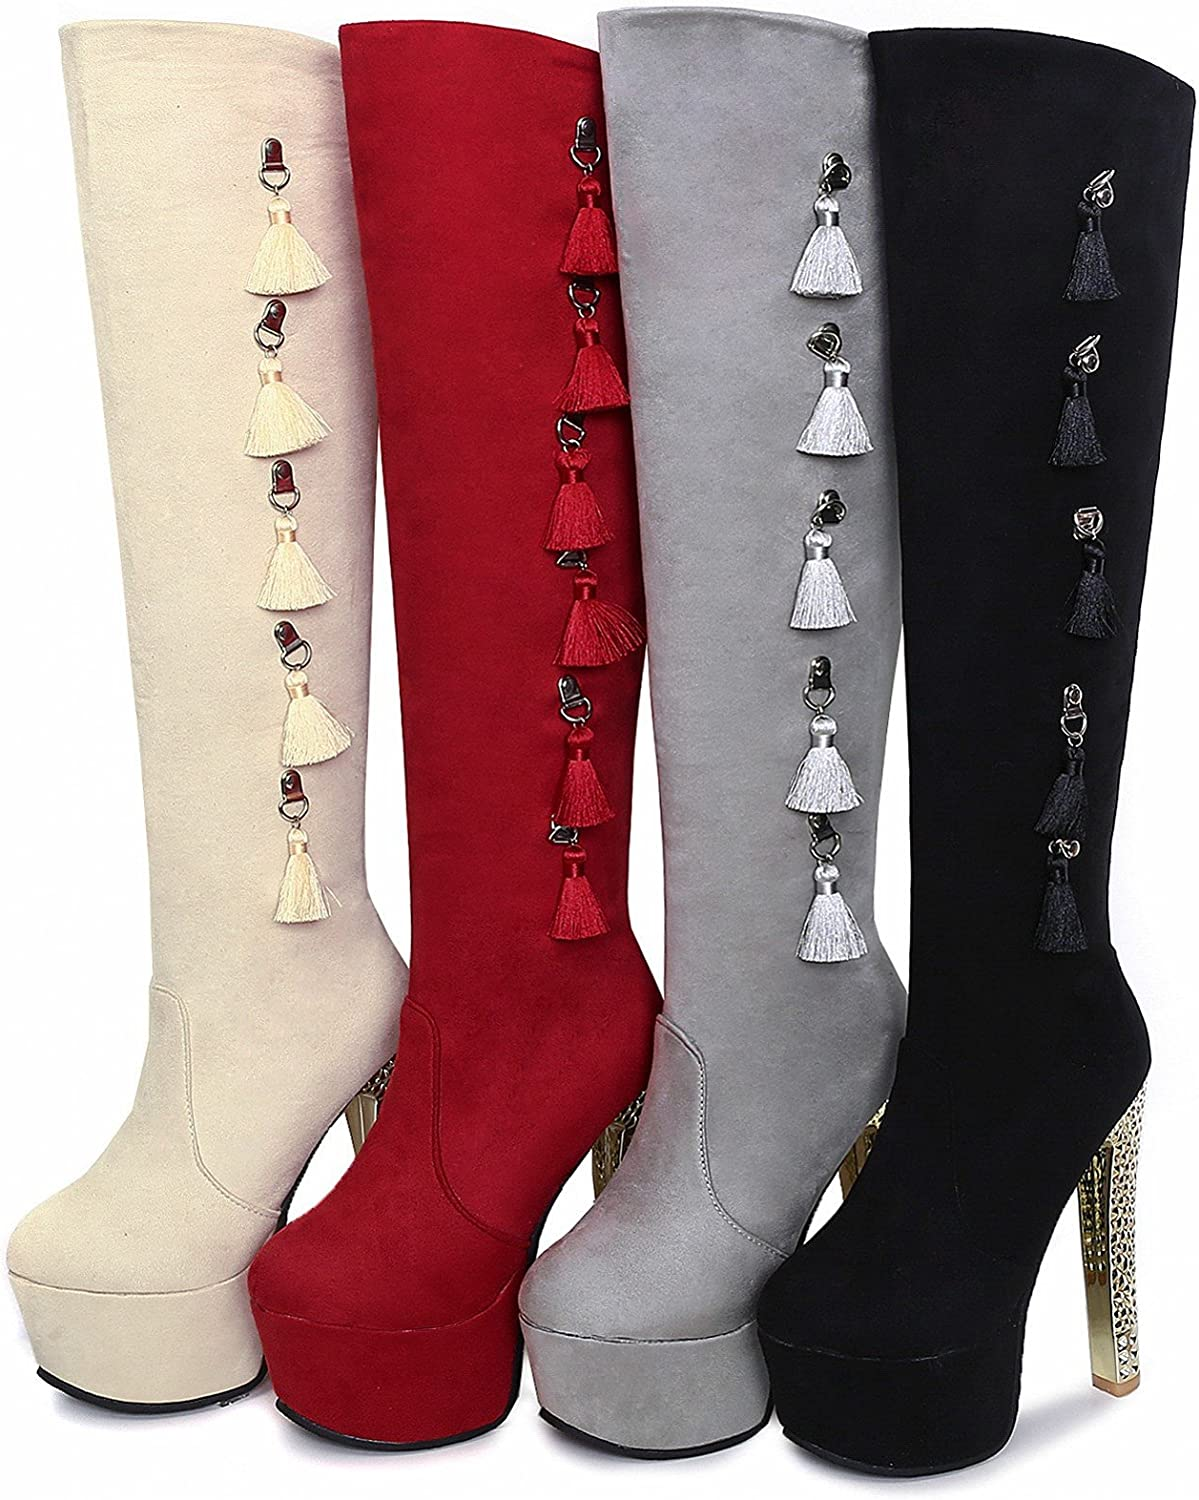 Rongzhi Womens Knee High Boots Platform Super Heels Thick Pumps Party Boots Round Toe